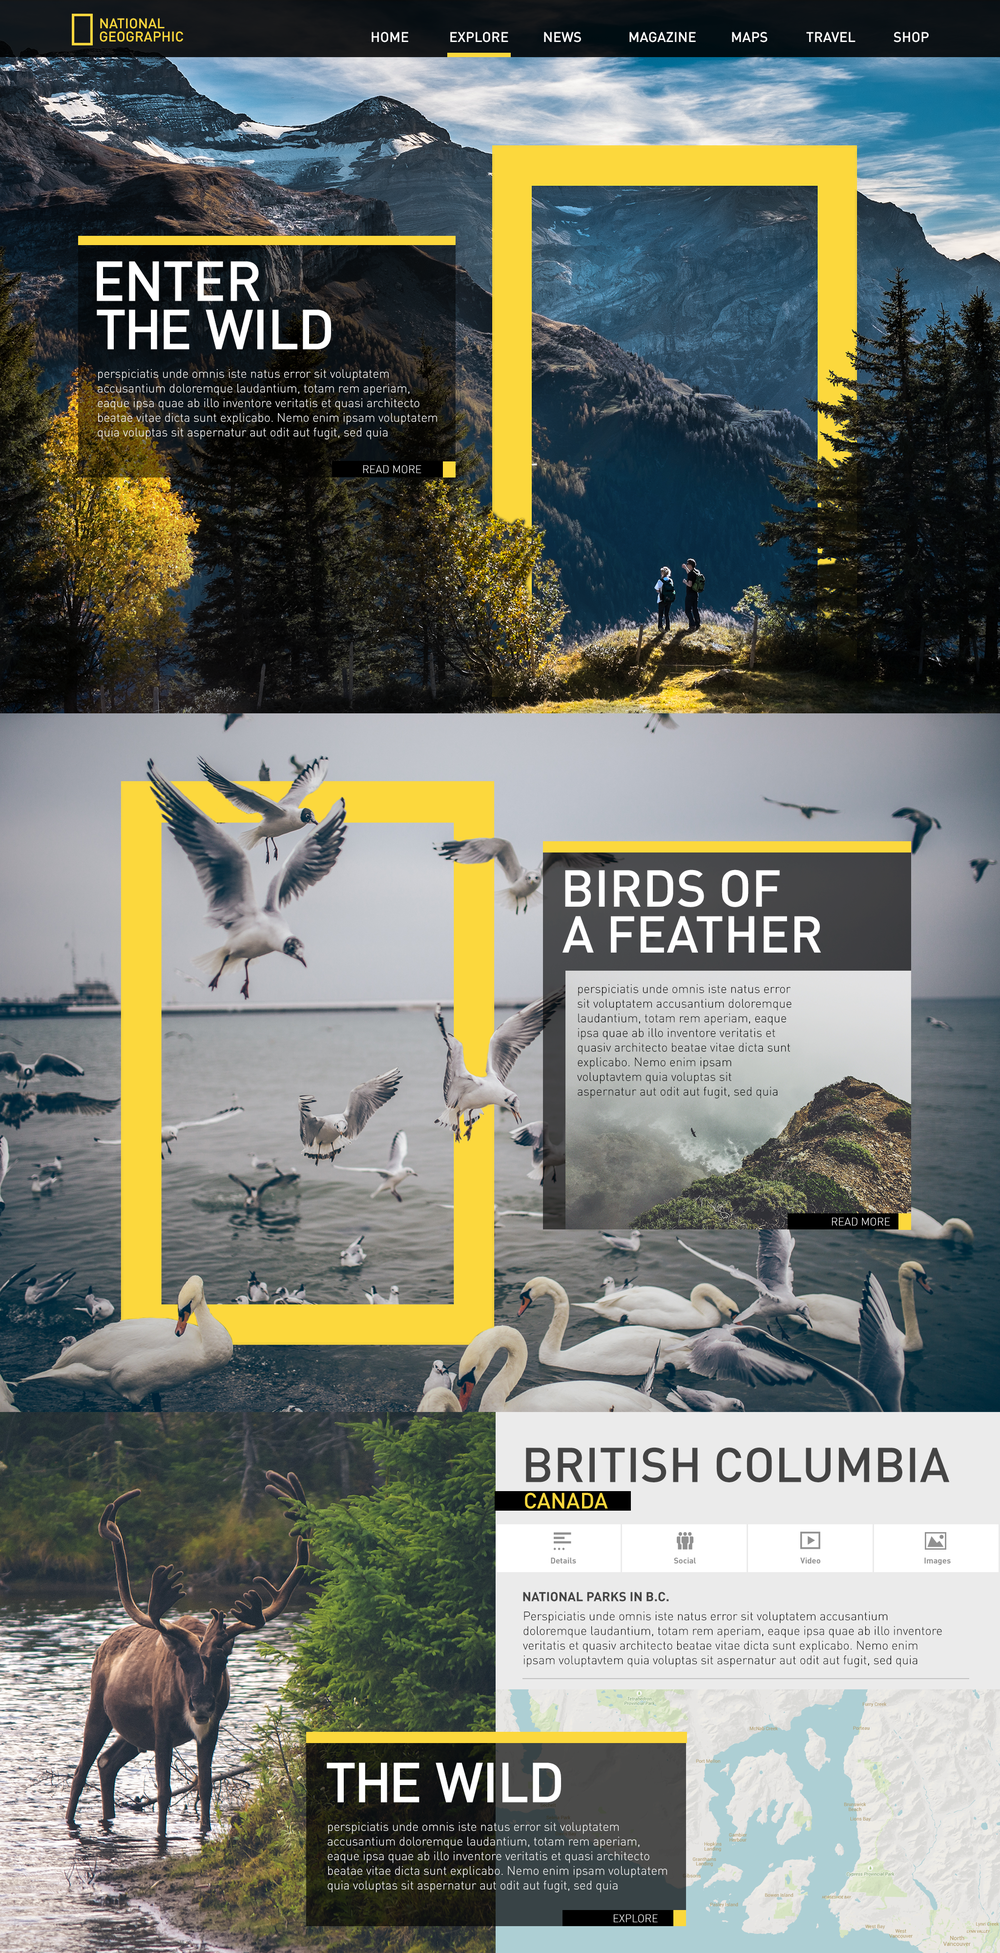 Concept for National Geographic site using rule of thirds